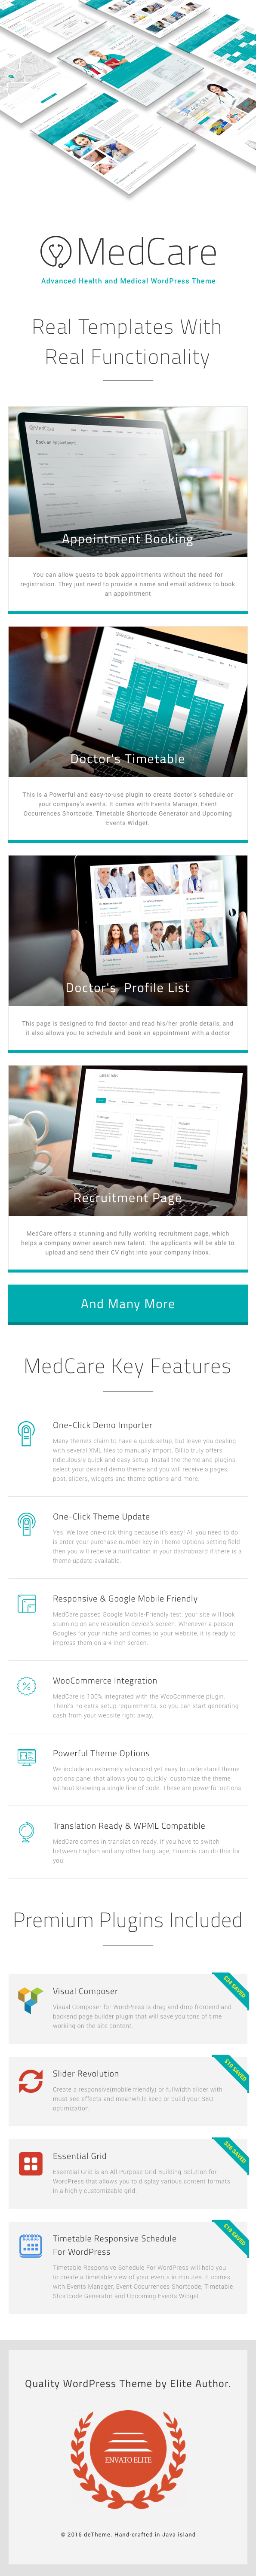 MedCare - Advanced Health & Medical WordPress Theme